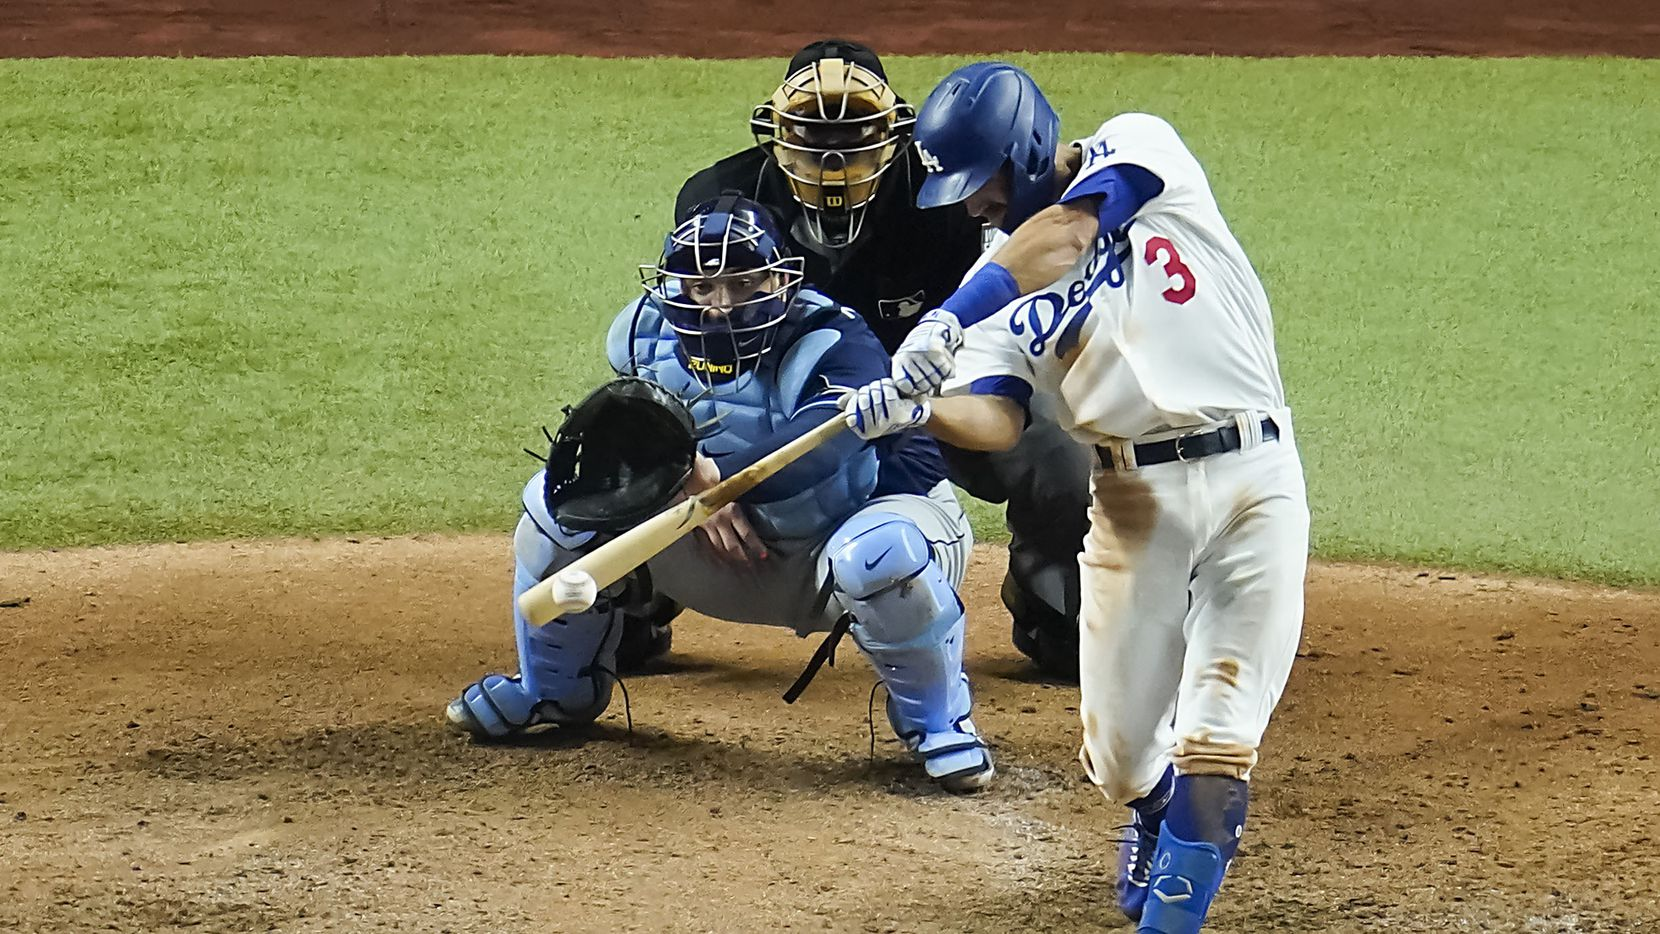 Los Angeles Dodgers second baseman Chris Taylor drives in a run with a single during the fifth inning in Game 1 of the World Series against the Tampa Bay Rays at Globe Life Field on Tuesday, Oct. 20, 2020.